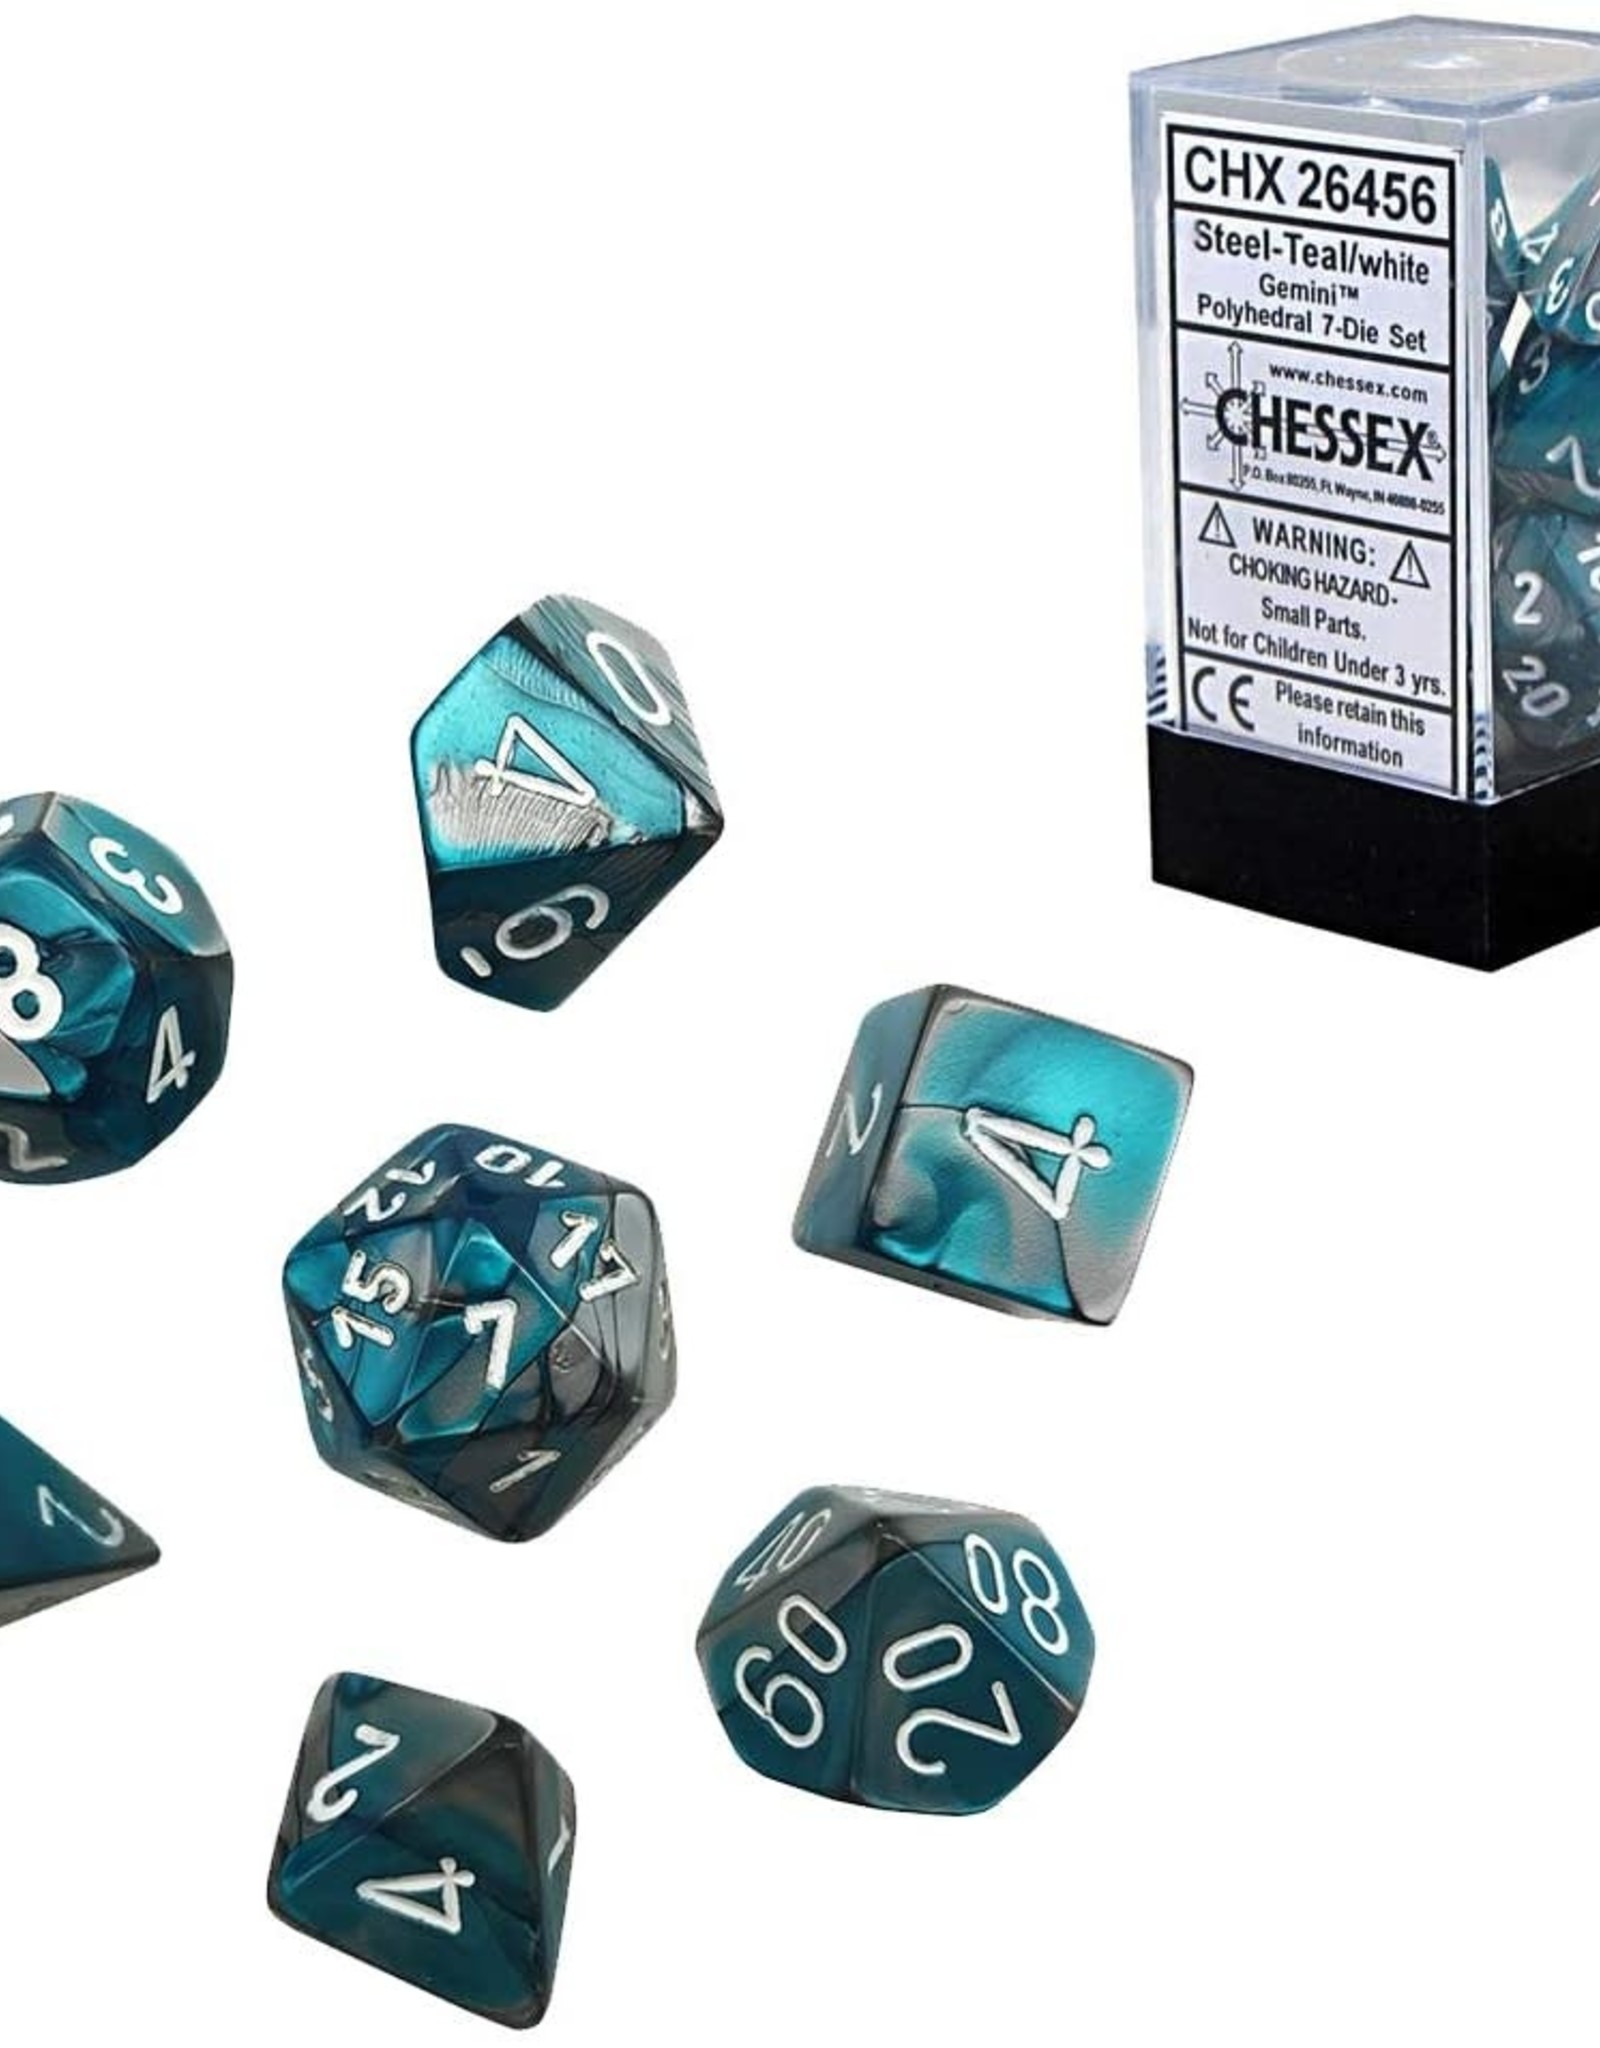 Chessex Gemini Poly 7 set:  Steel & Teal w/ White